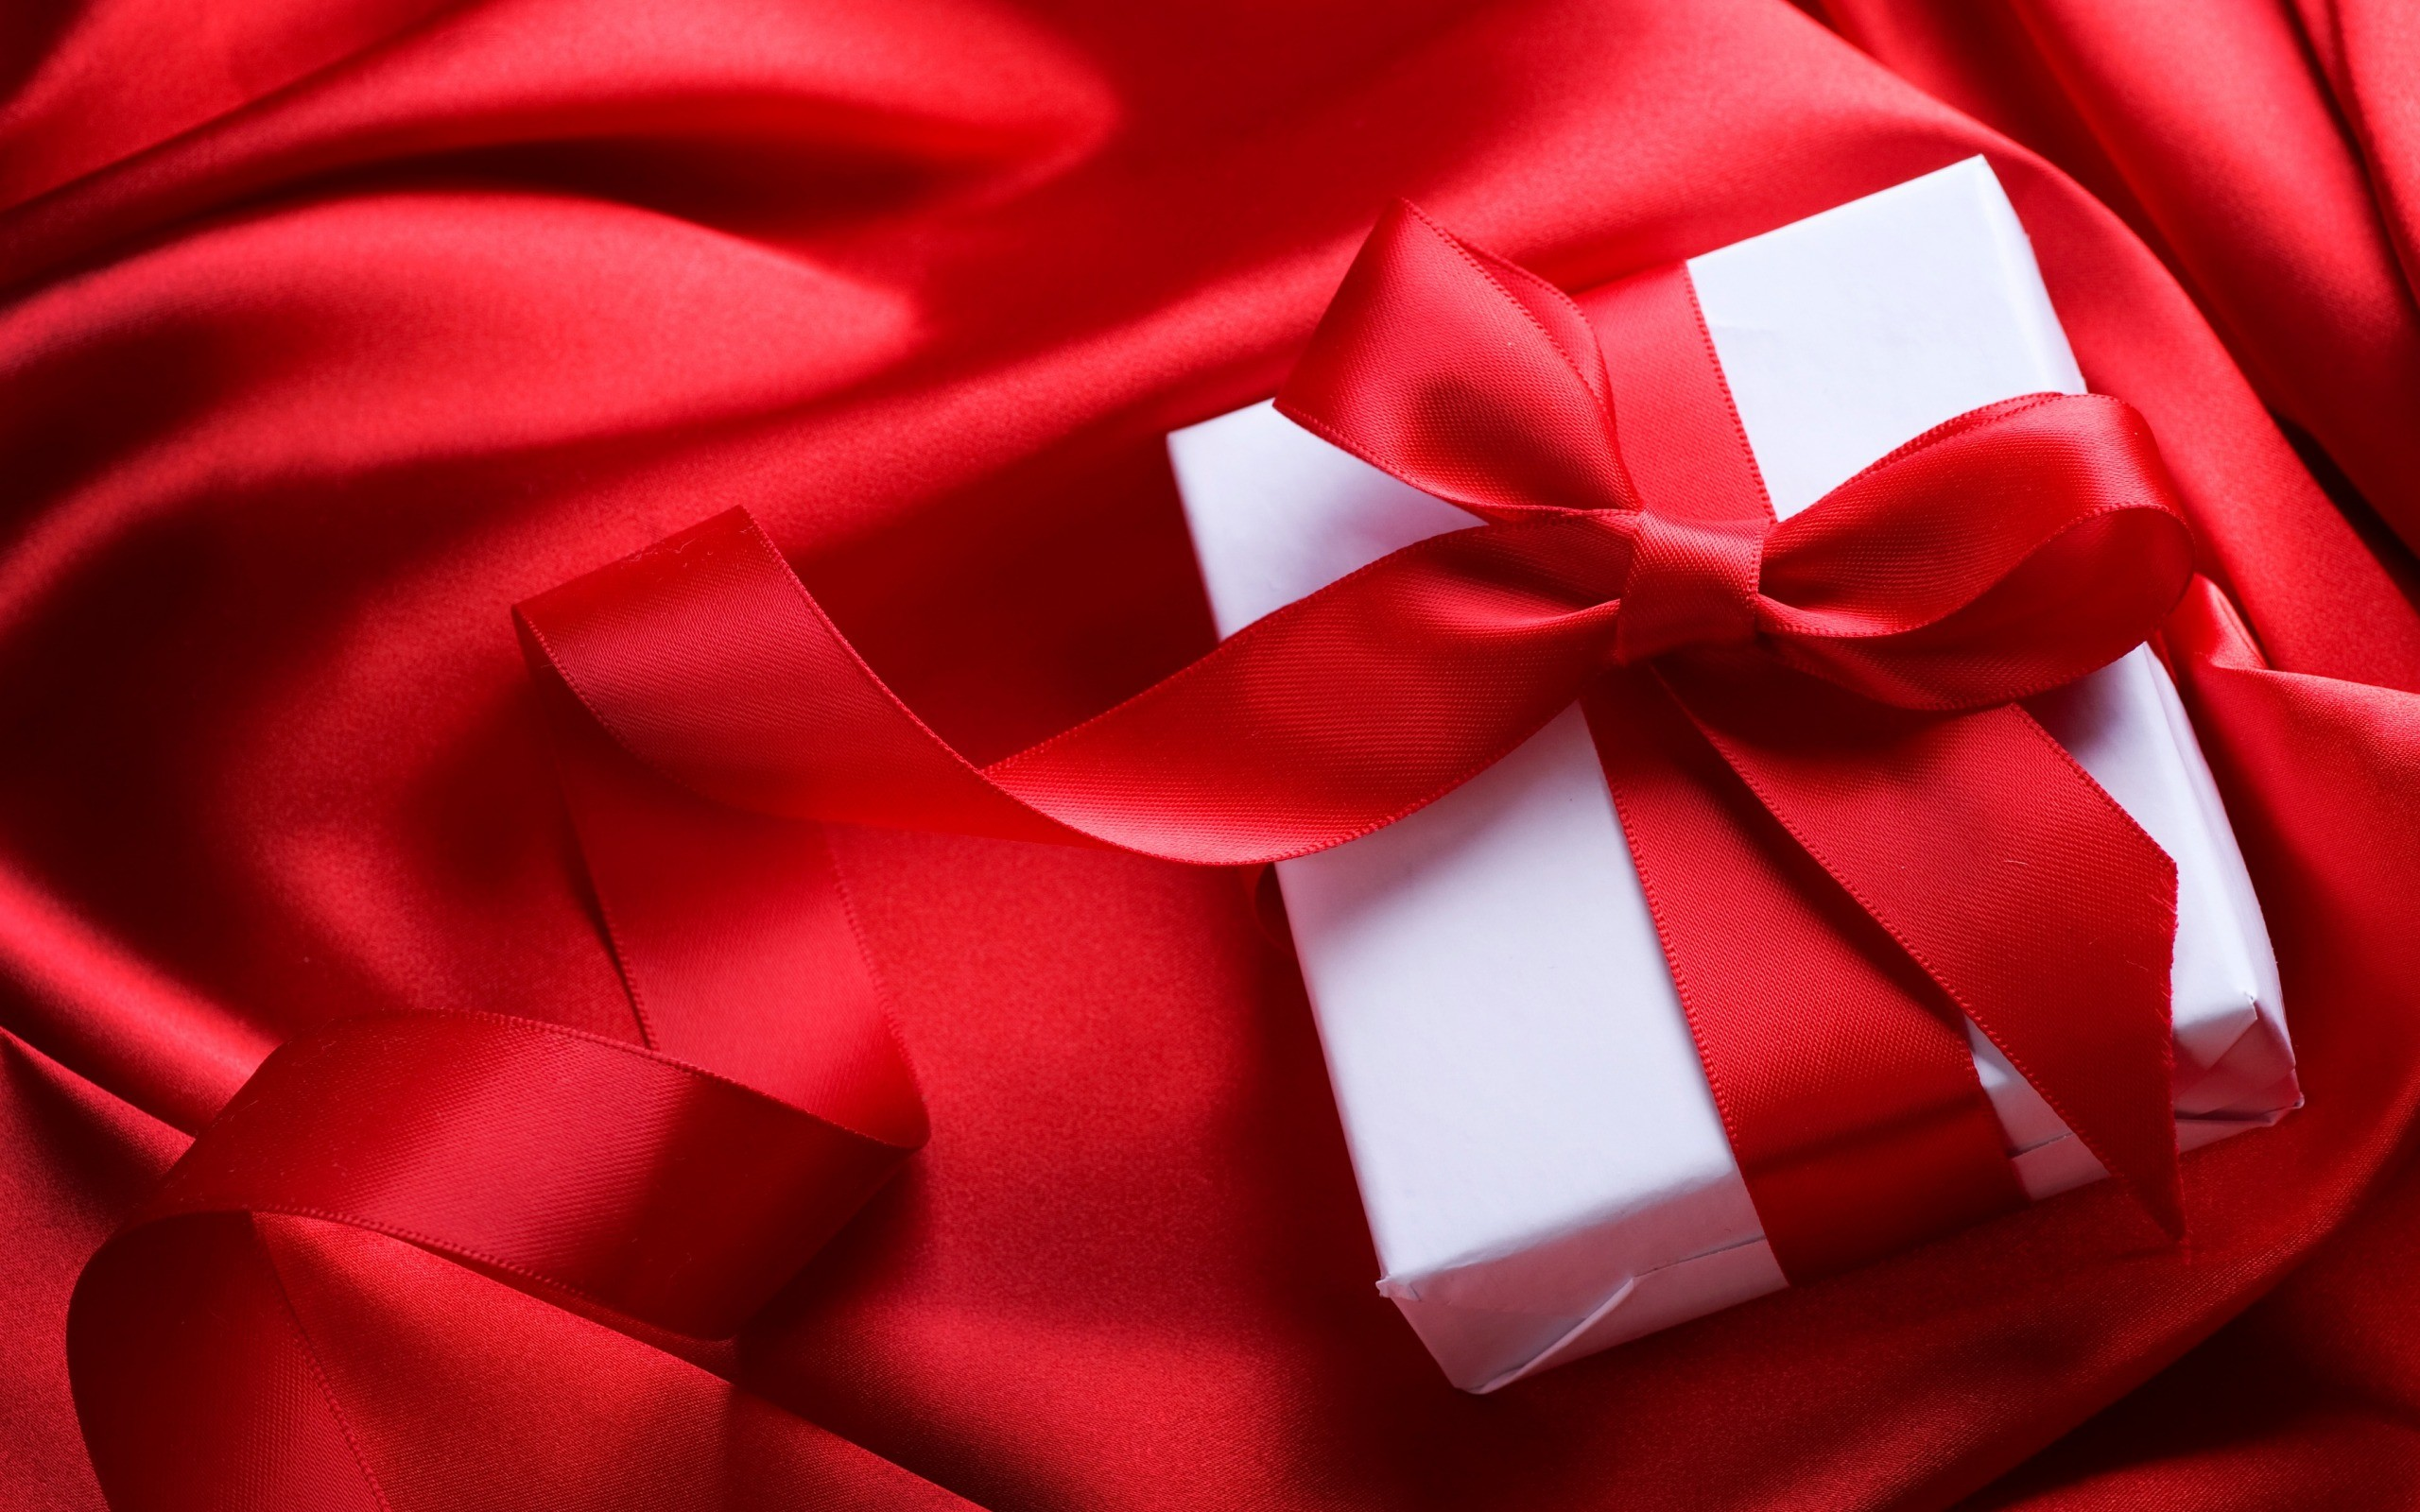 Res: 2560x1600, red silk fabric, romantic gift, white box, red bow, February 14,